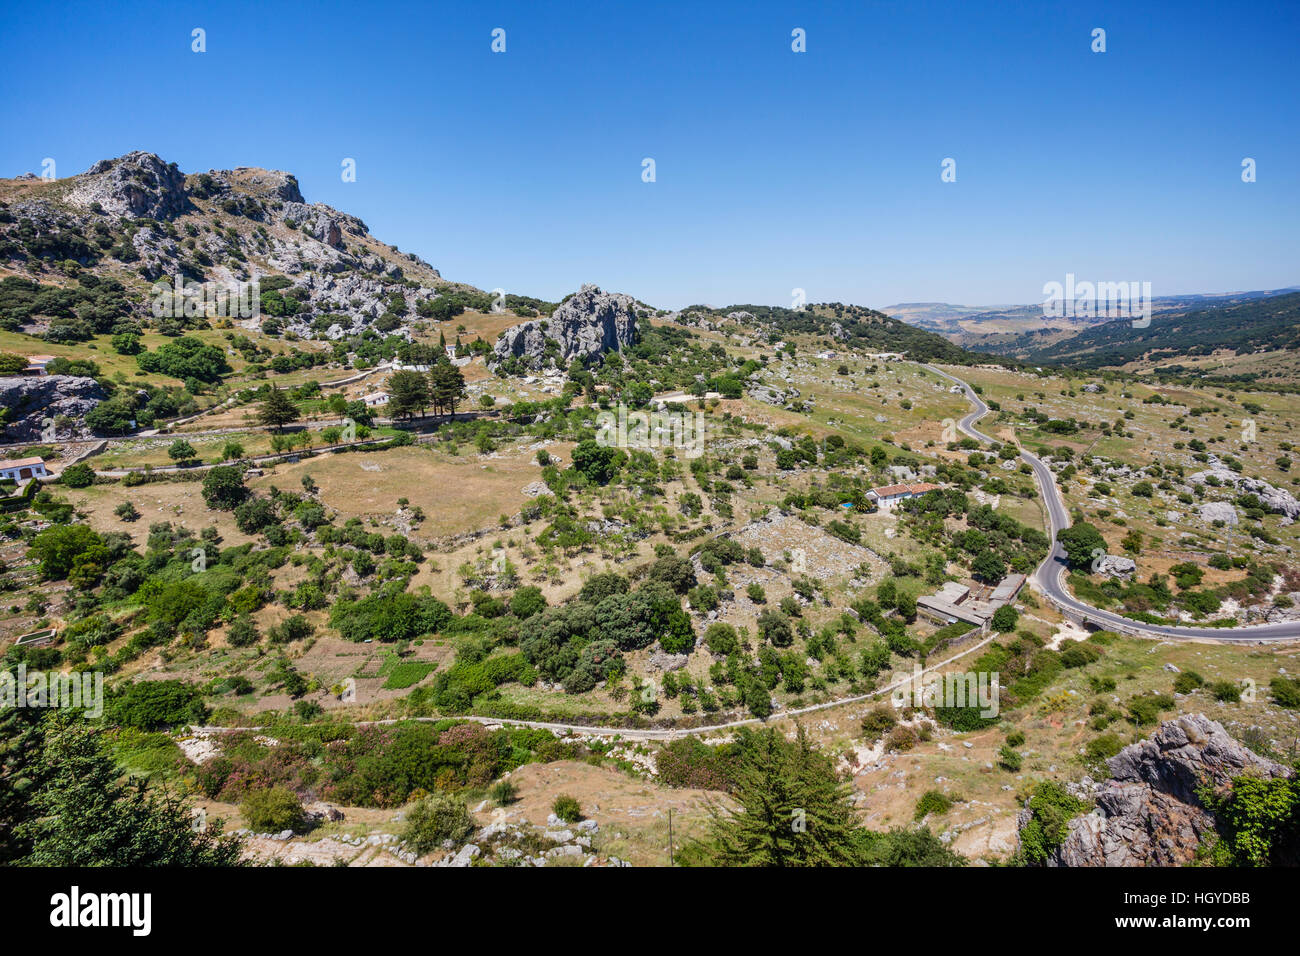 Spain, Andalusia, Province of Cadiz, landscape near the village of Grazalema in the foothills of the Sierra del - Stock Image